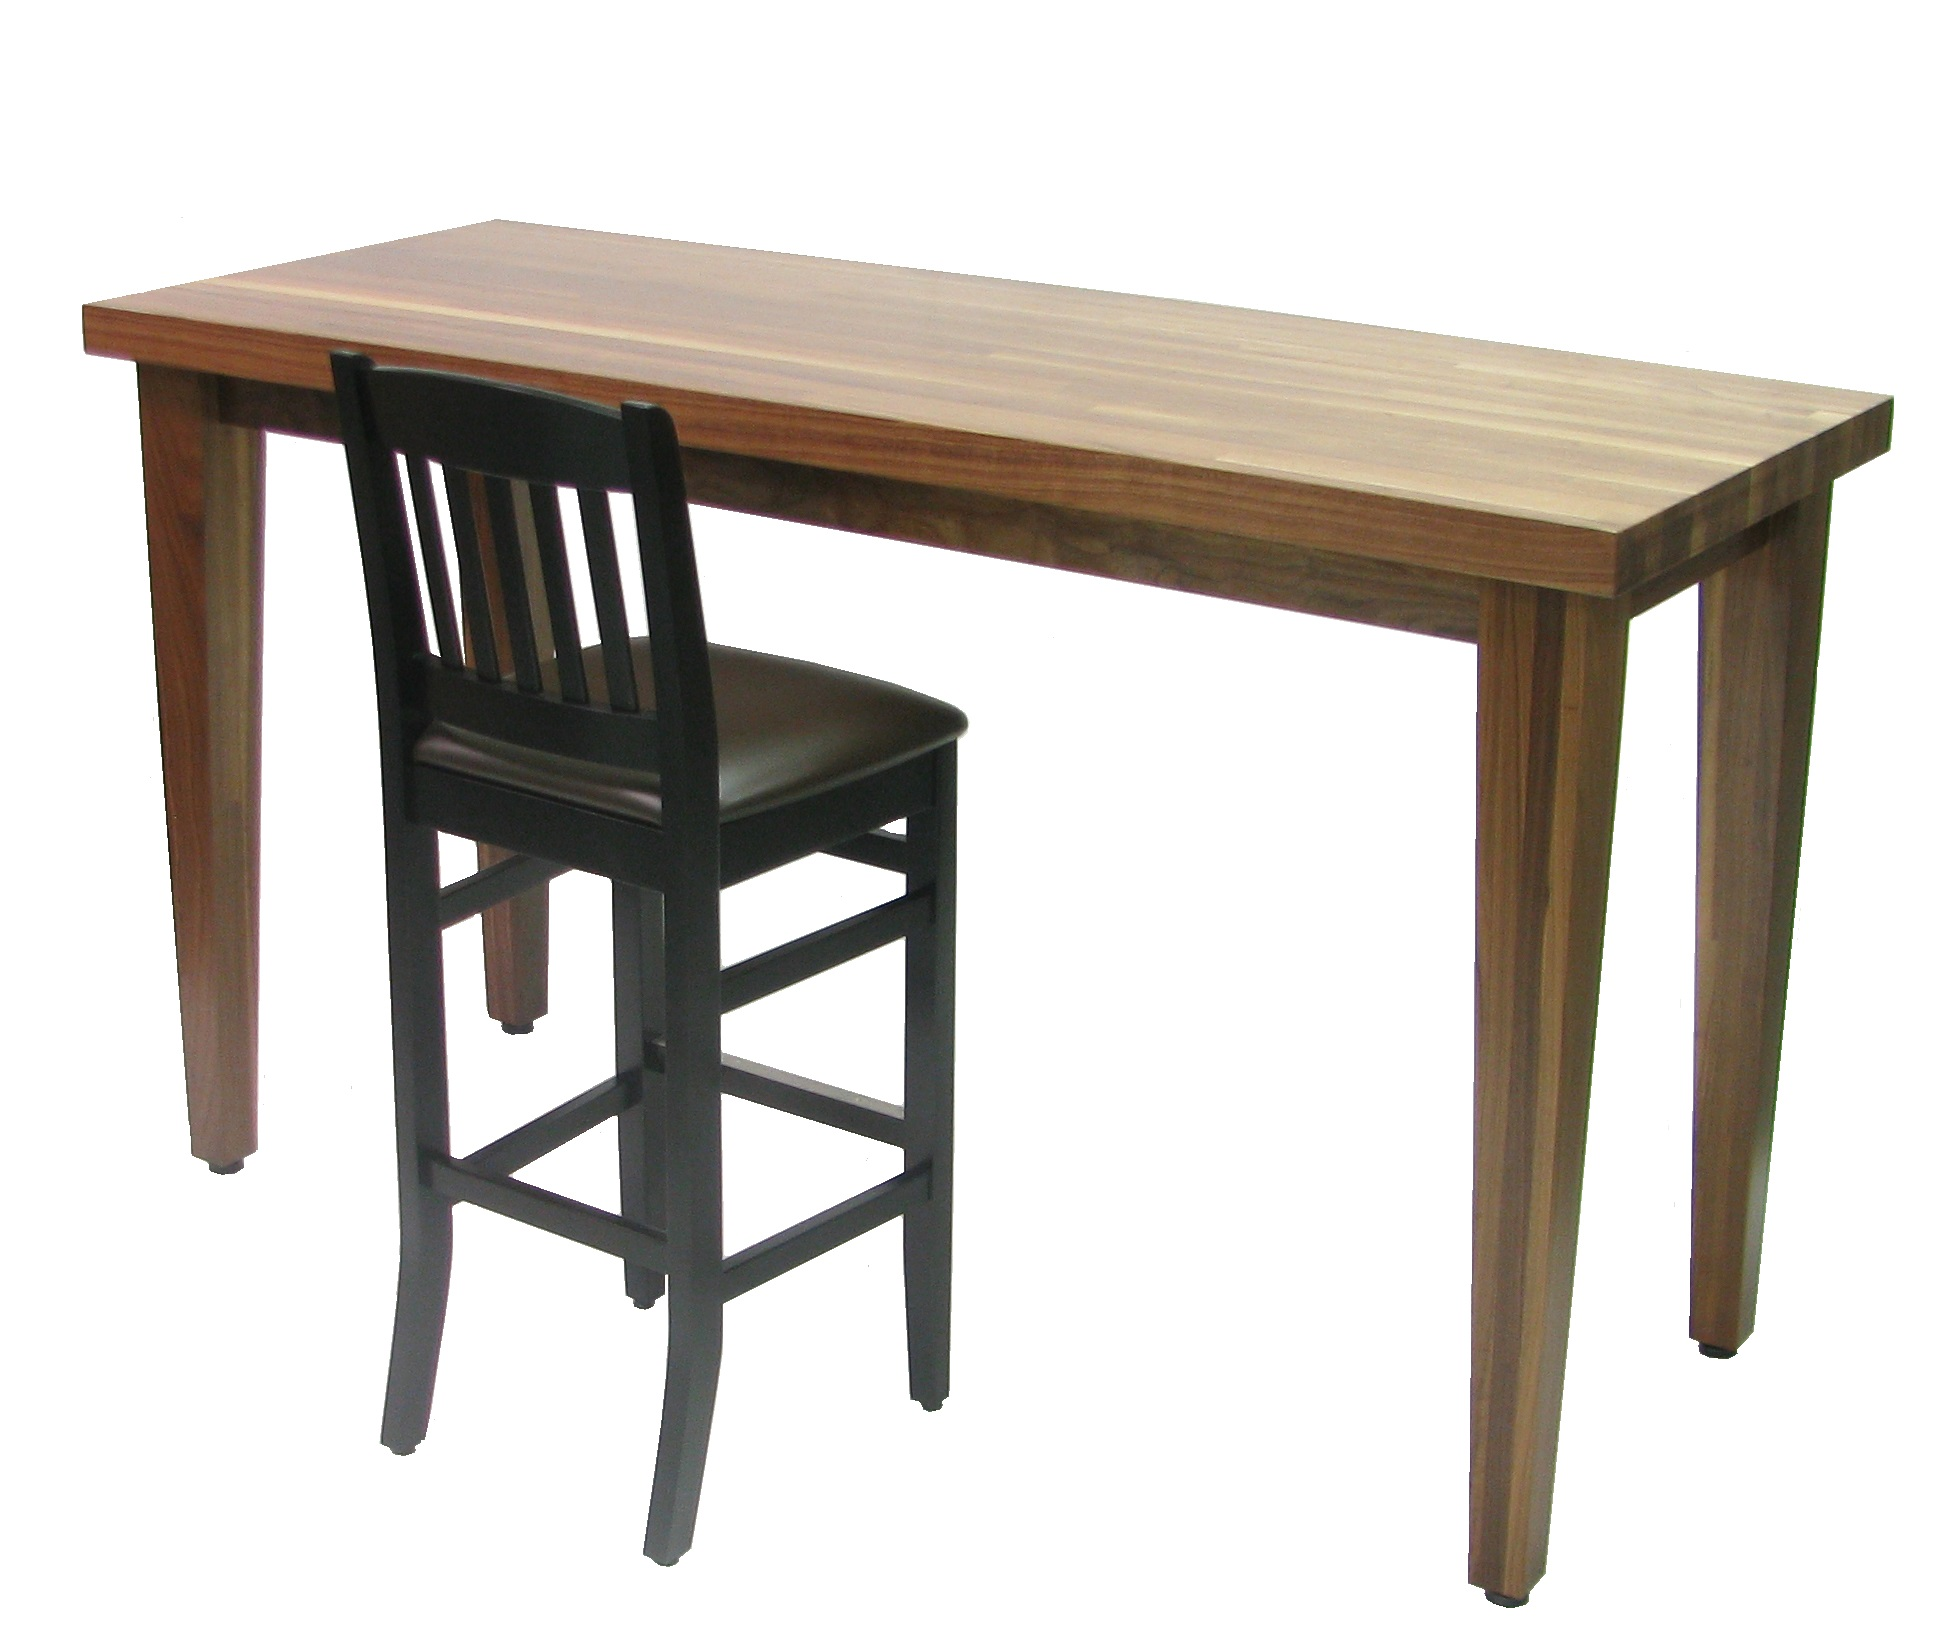 Farmhouse Table - Tapered Legs